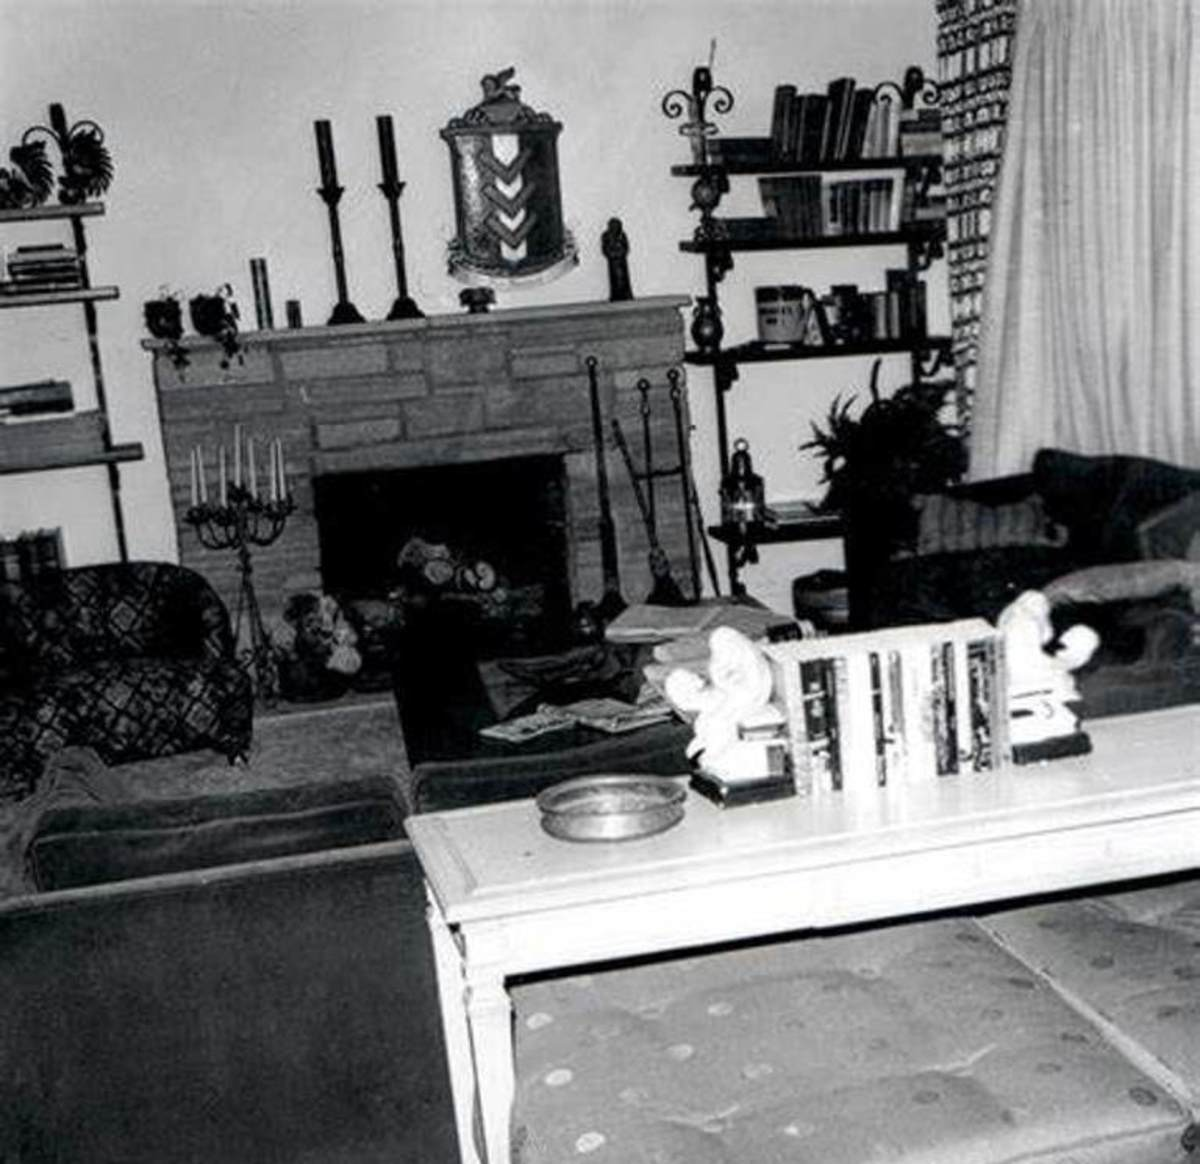 The LaBianca living room. Leno was found on the floor in front of the couch.